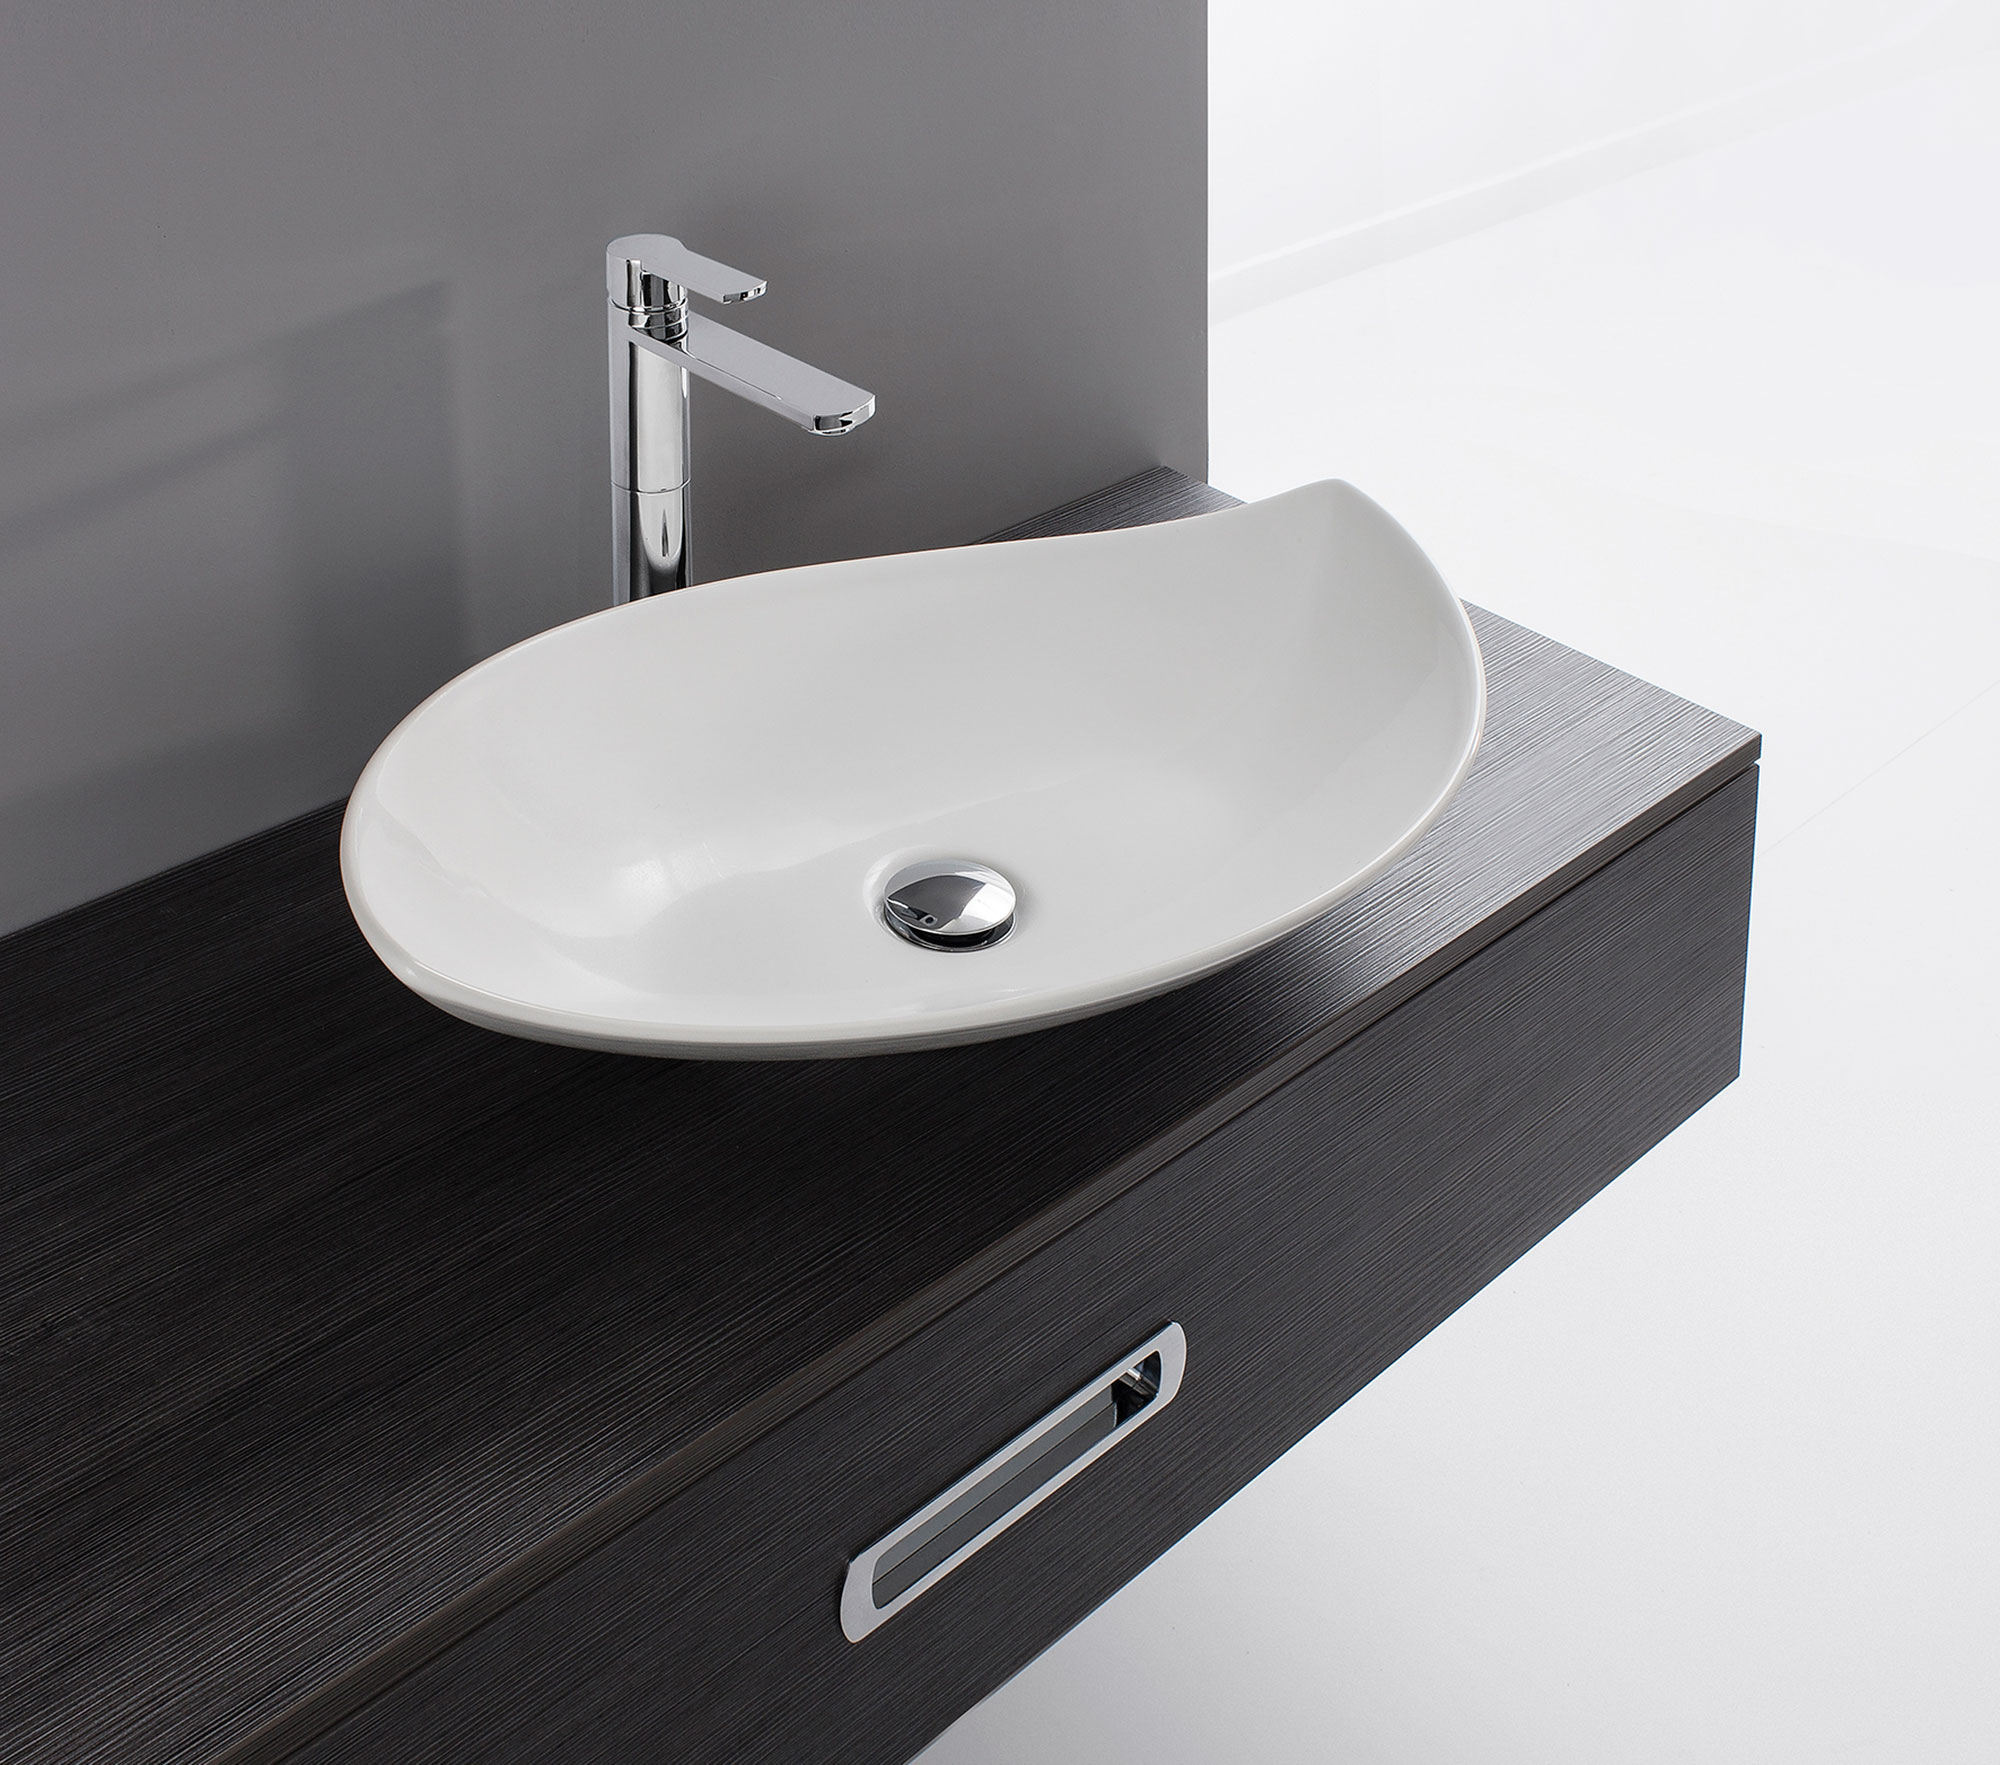 On Trend Bathroom Colors: Stylish Sculptural Basins For An On-Trend Bathroom